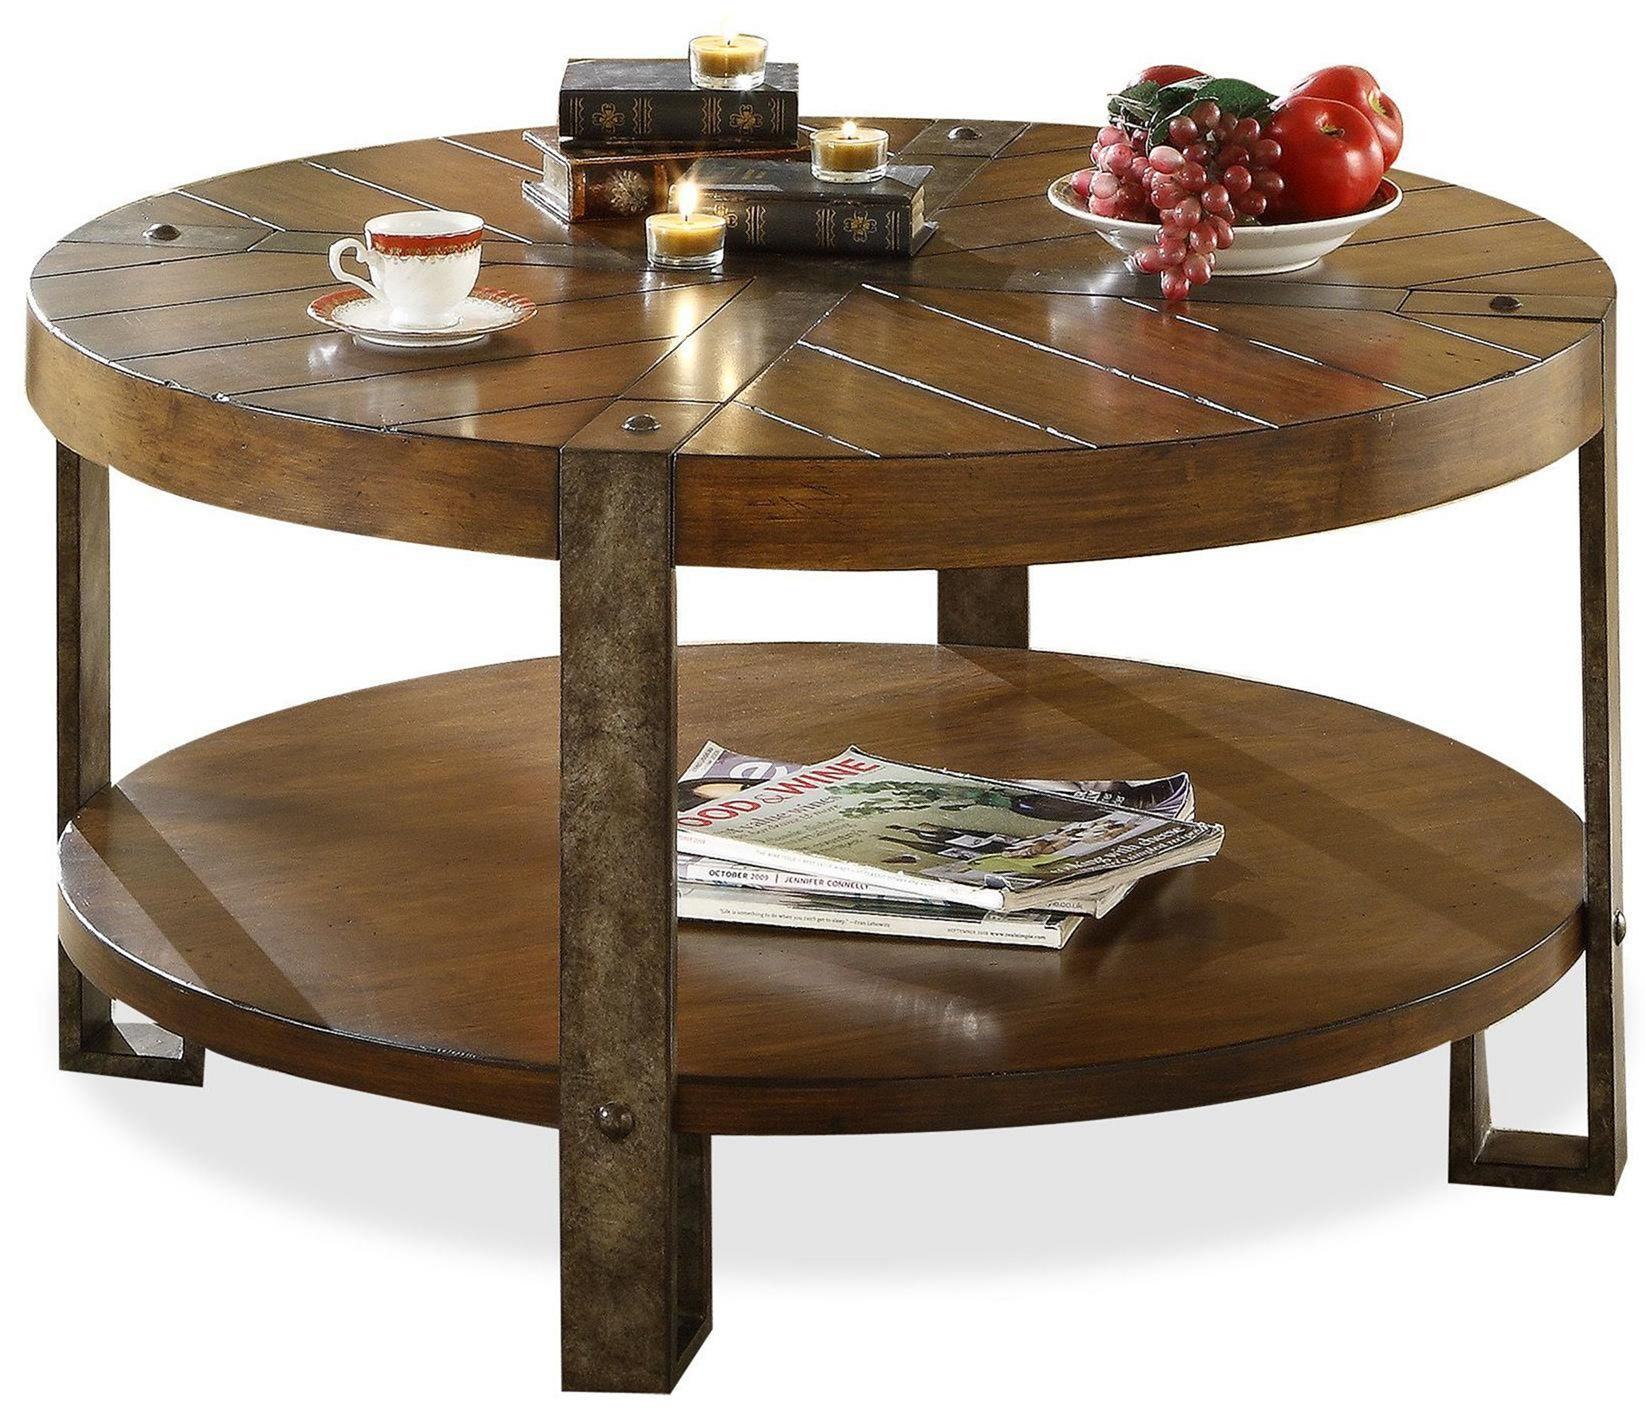 25 Best Amazing Diy Coffee Table Ideas For Your Space Cozy Reclaimed Coffee Table Round Wood Coffee Table Coffee Table Furniture [ 1423 x 1645 Pixel ]